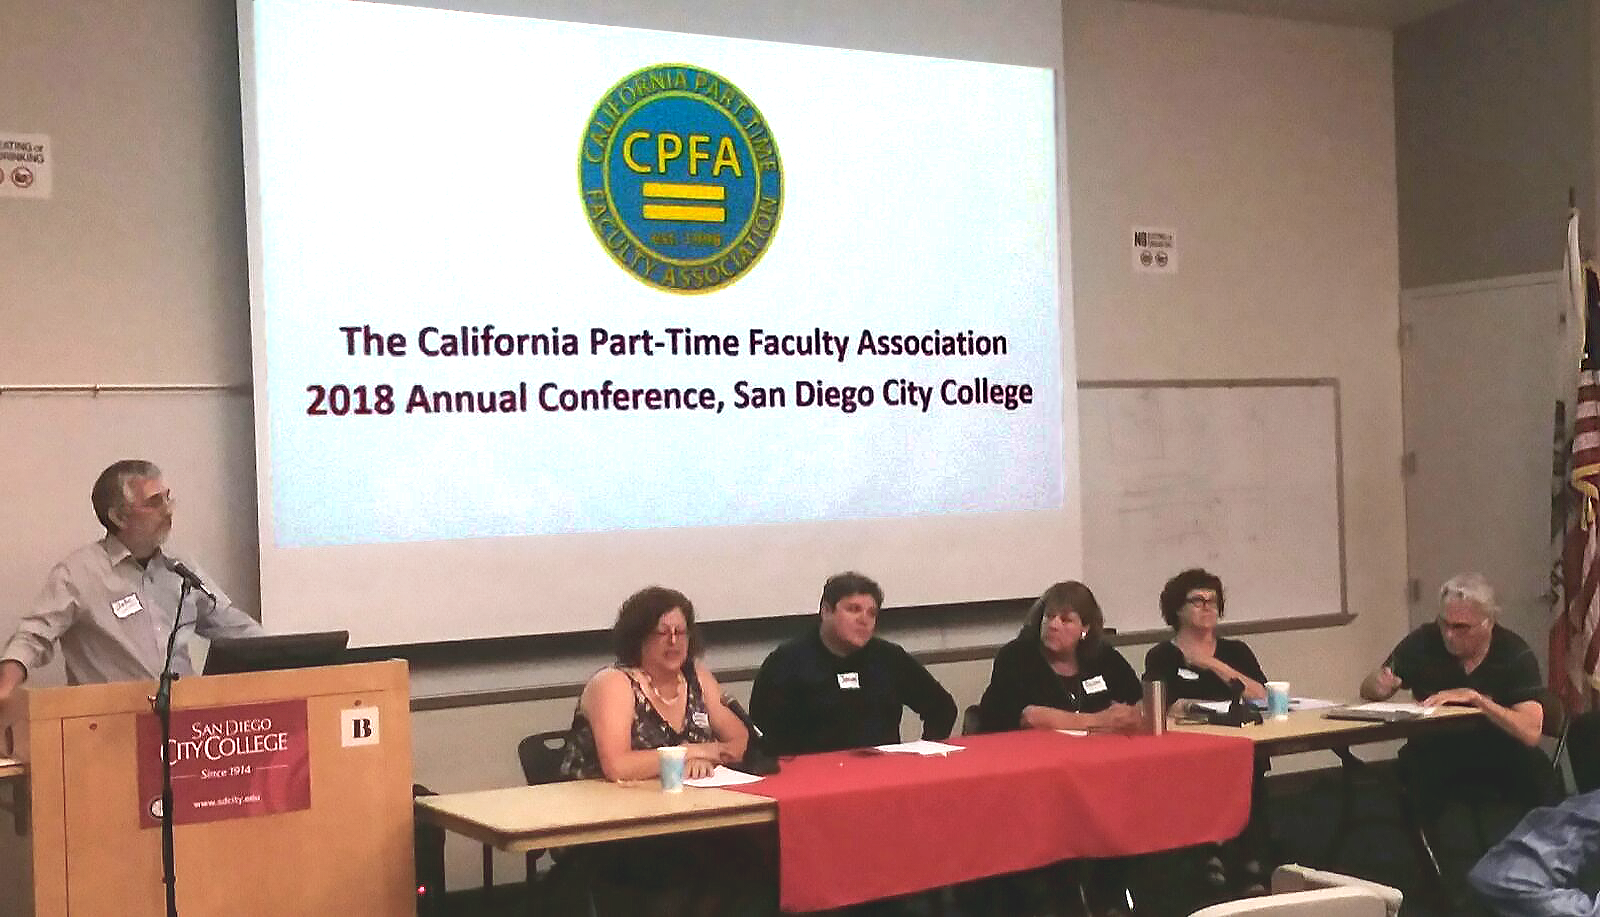 John-Martin-at-podium-introducing-speakers-and-panel-discussion-CPFA-Conference